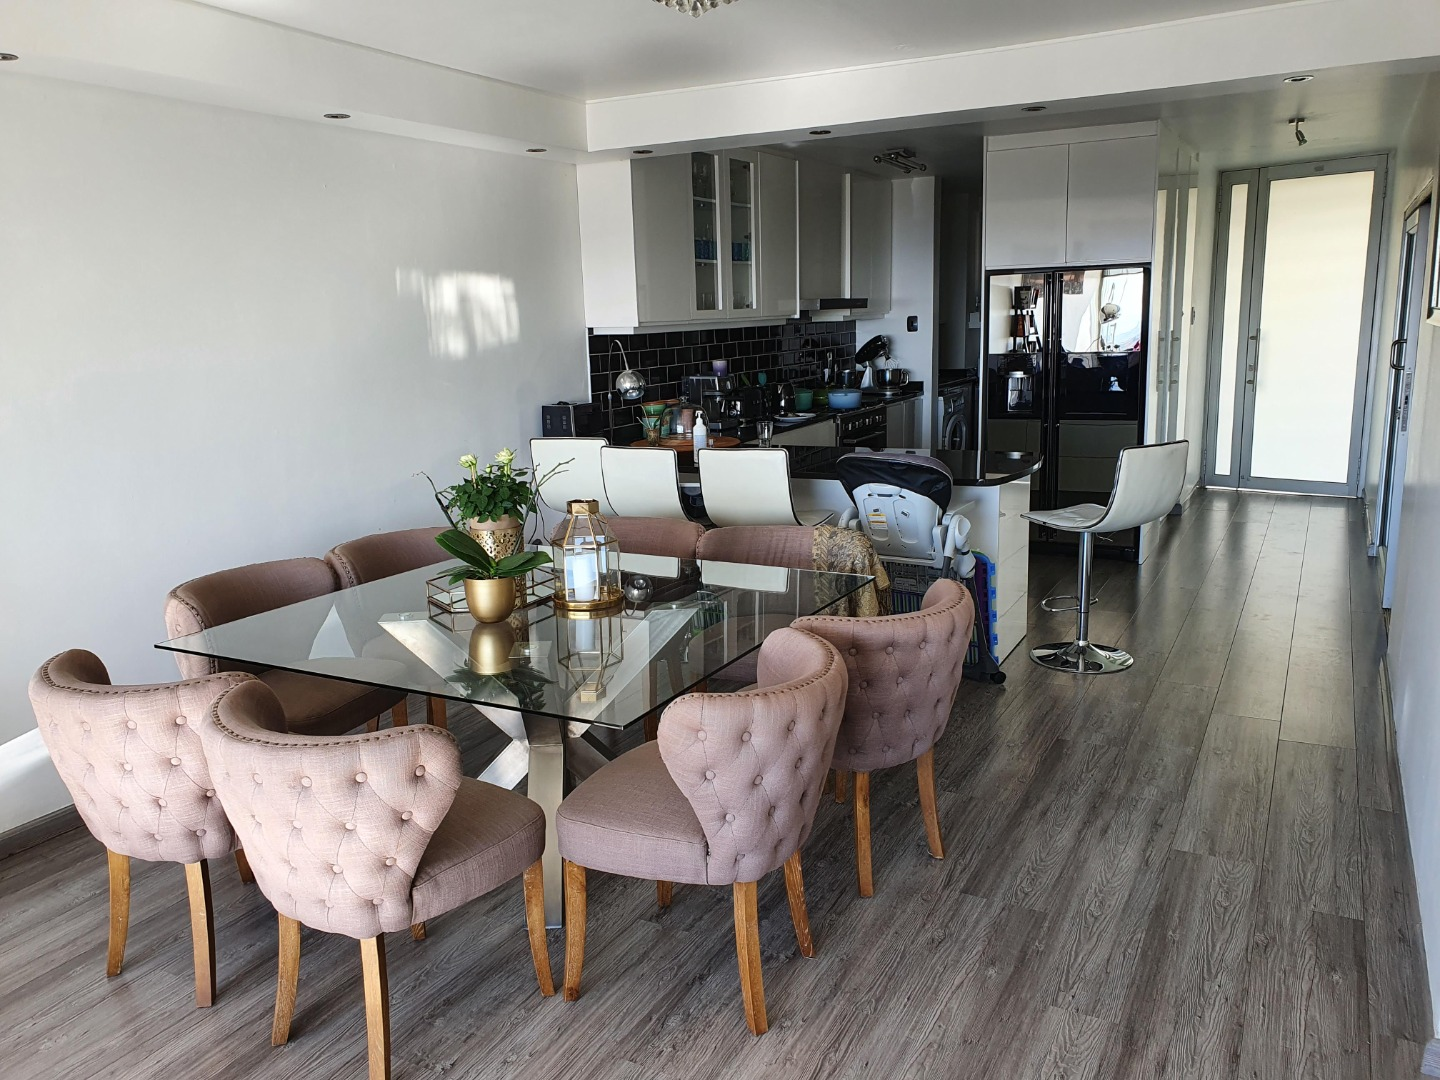 3 Bedroom Apartment / Flat For Sale in Killarney